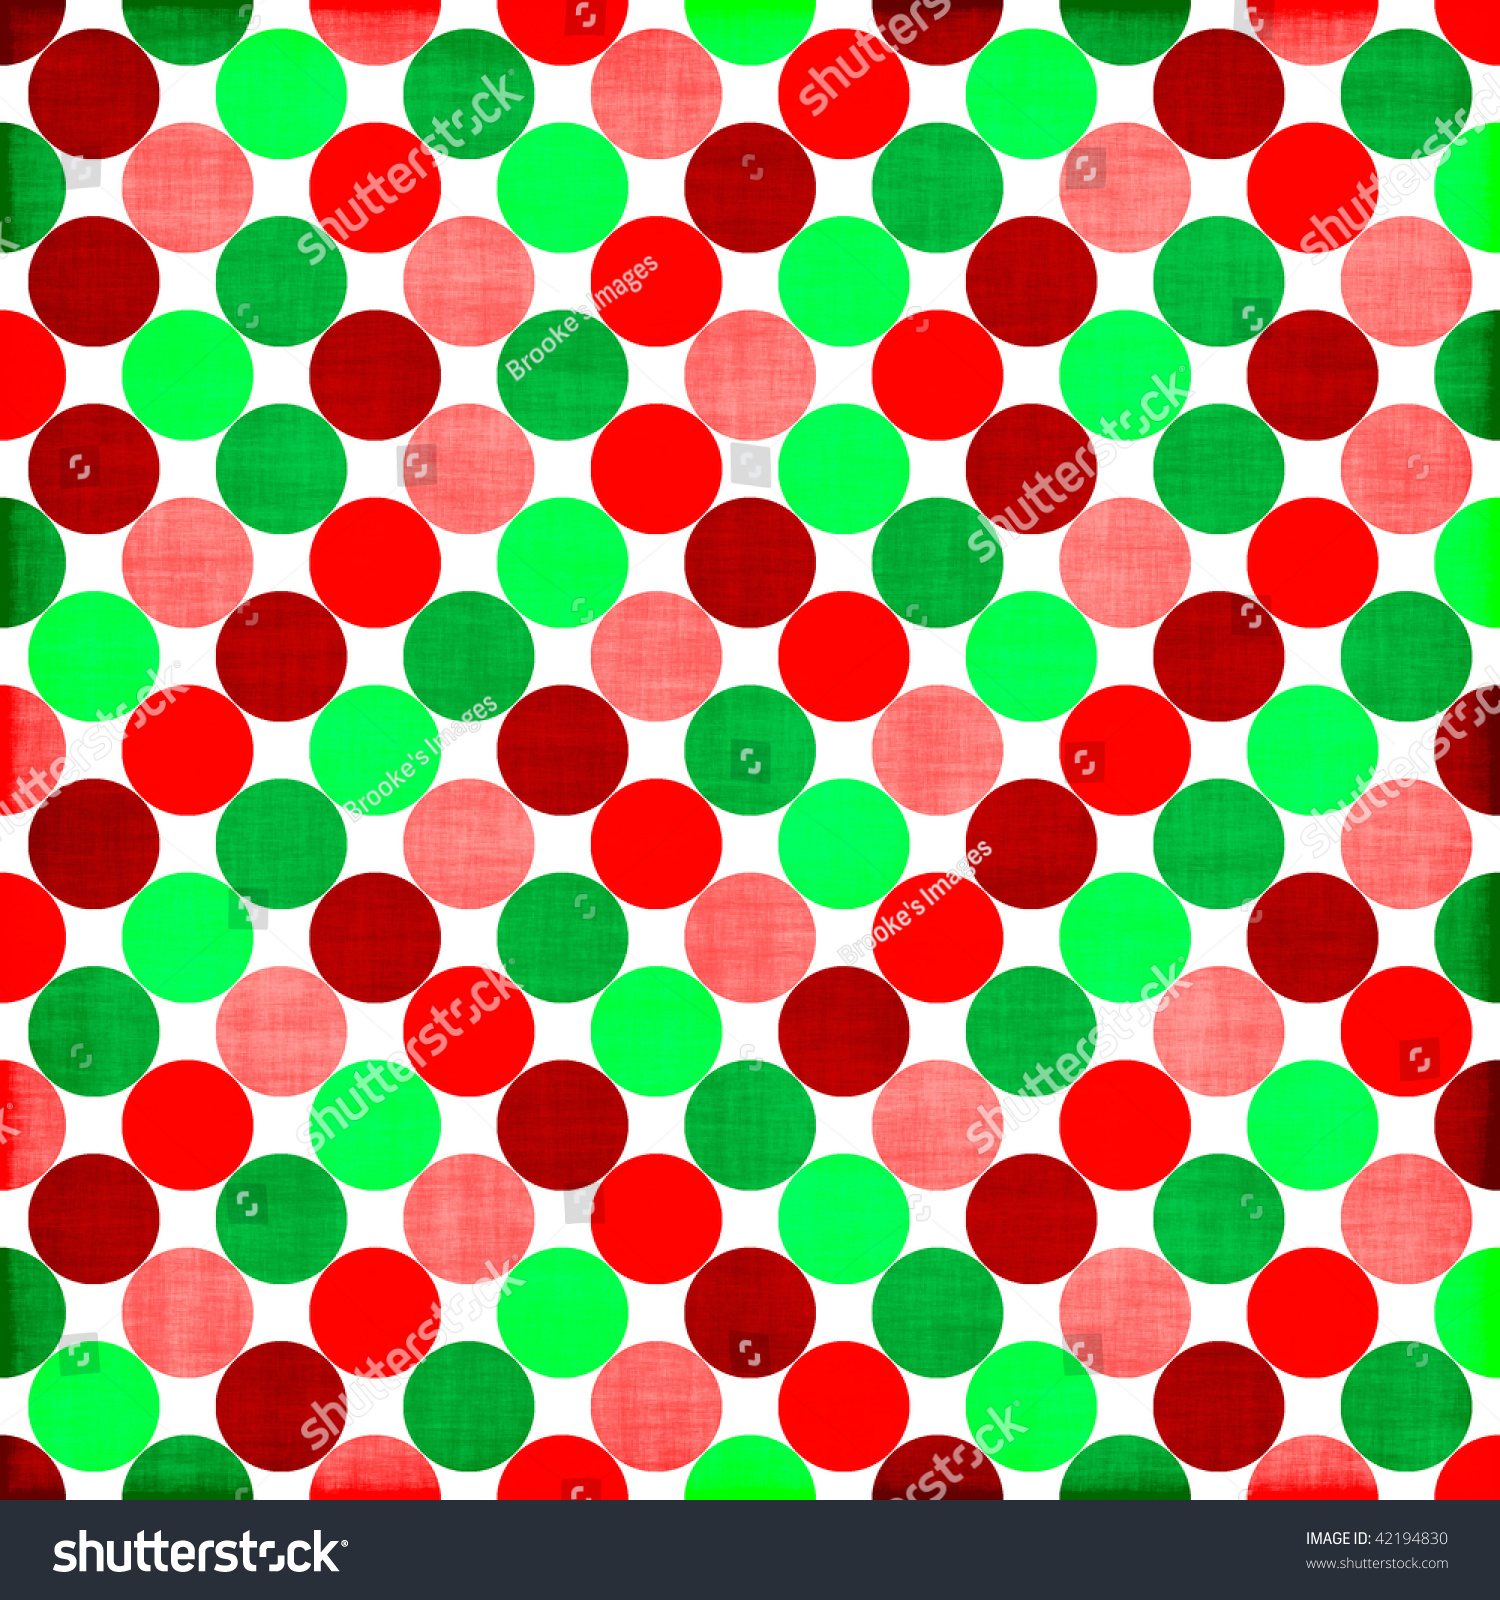 Colorful Big Polka Dot Background Stock Photo 42194830